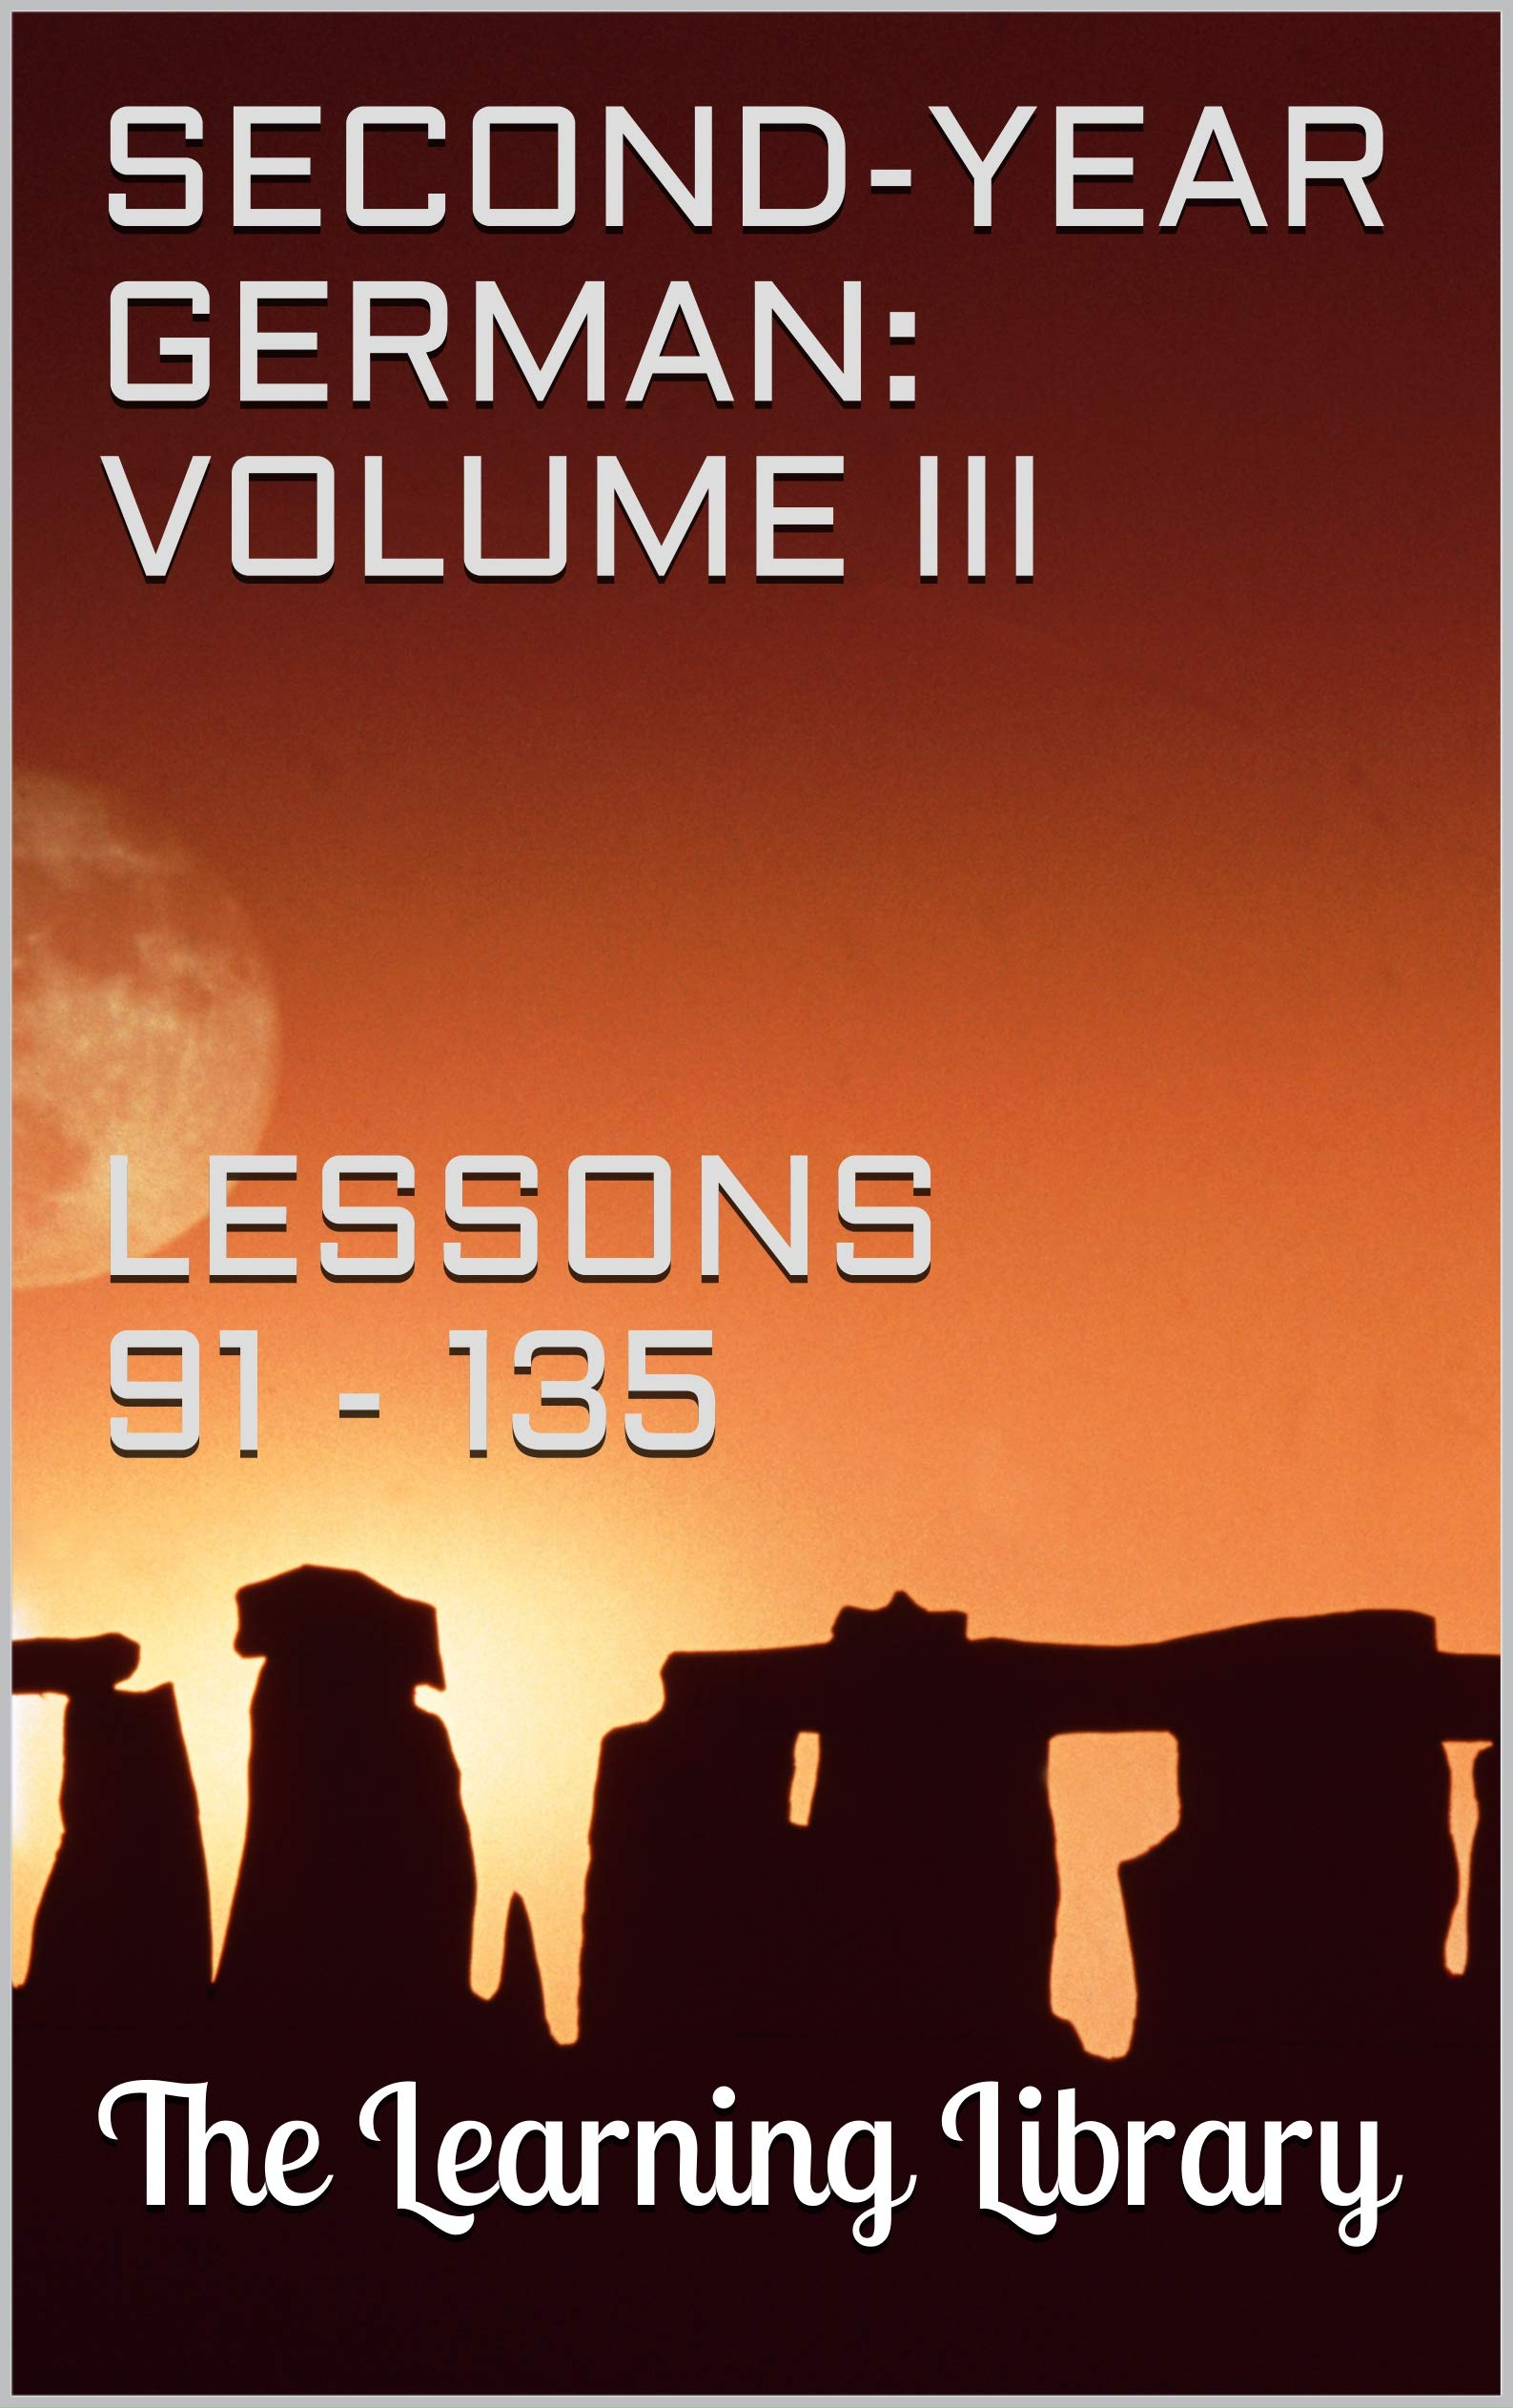 The Learning Library: Second-Year German, Volume III: Lessons 91 - 135